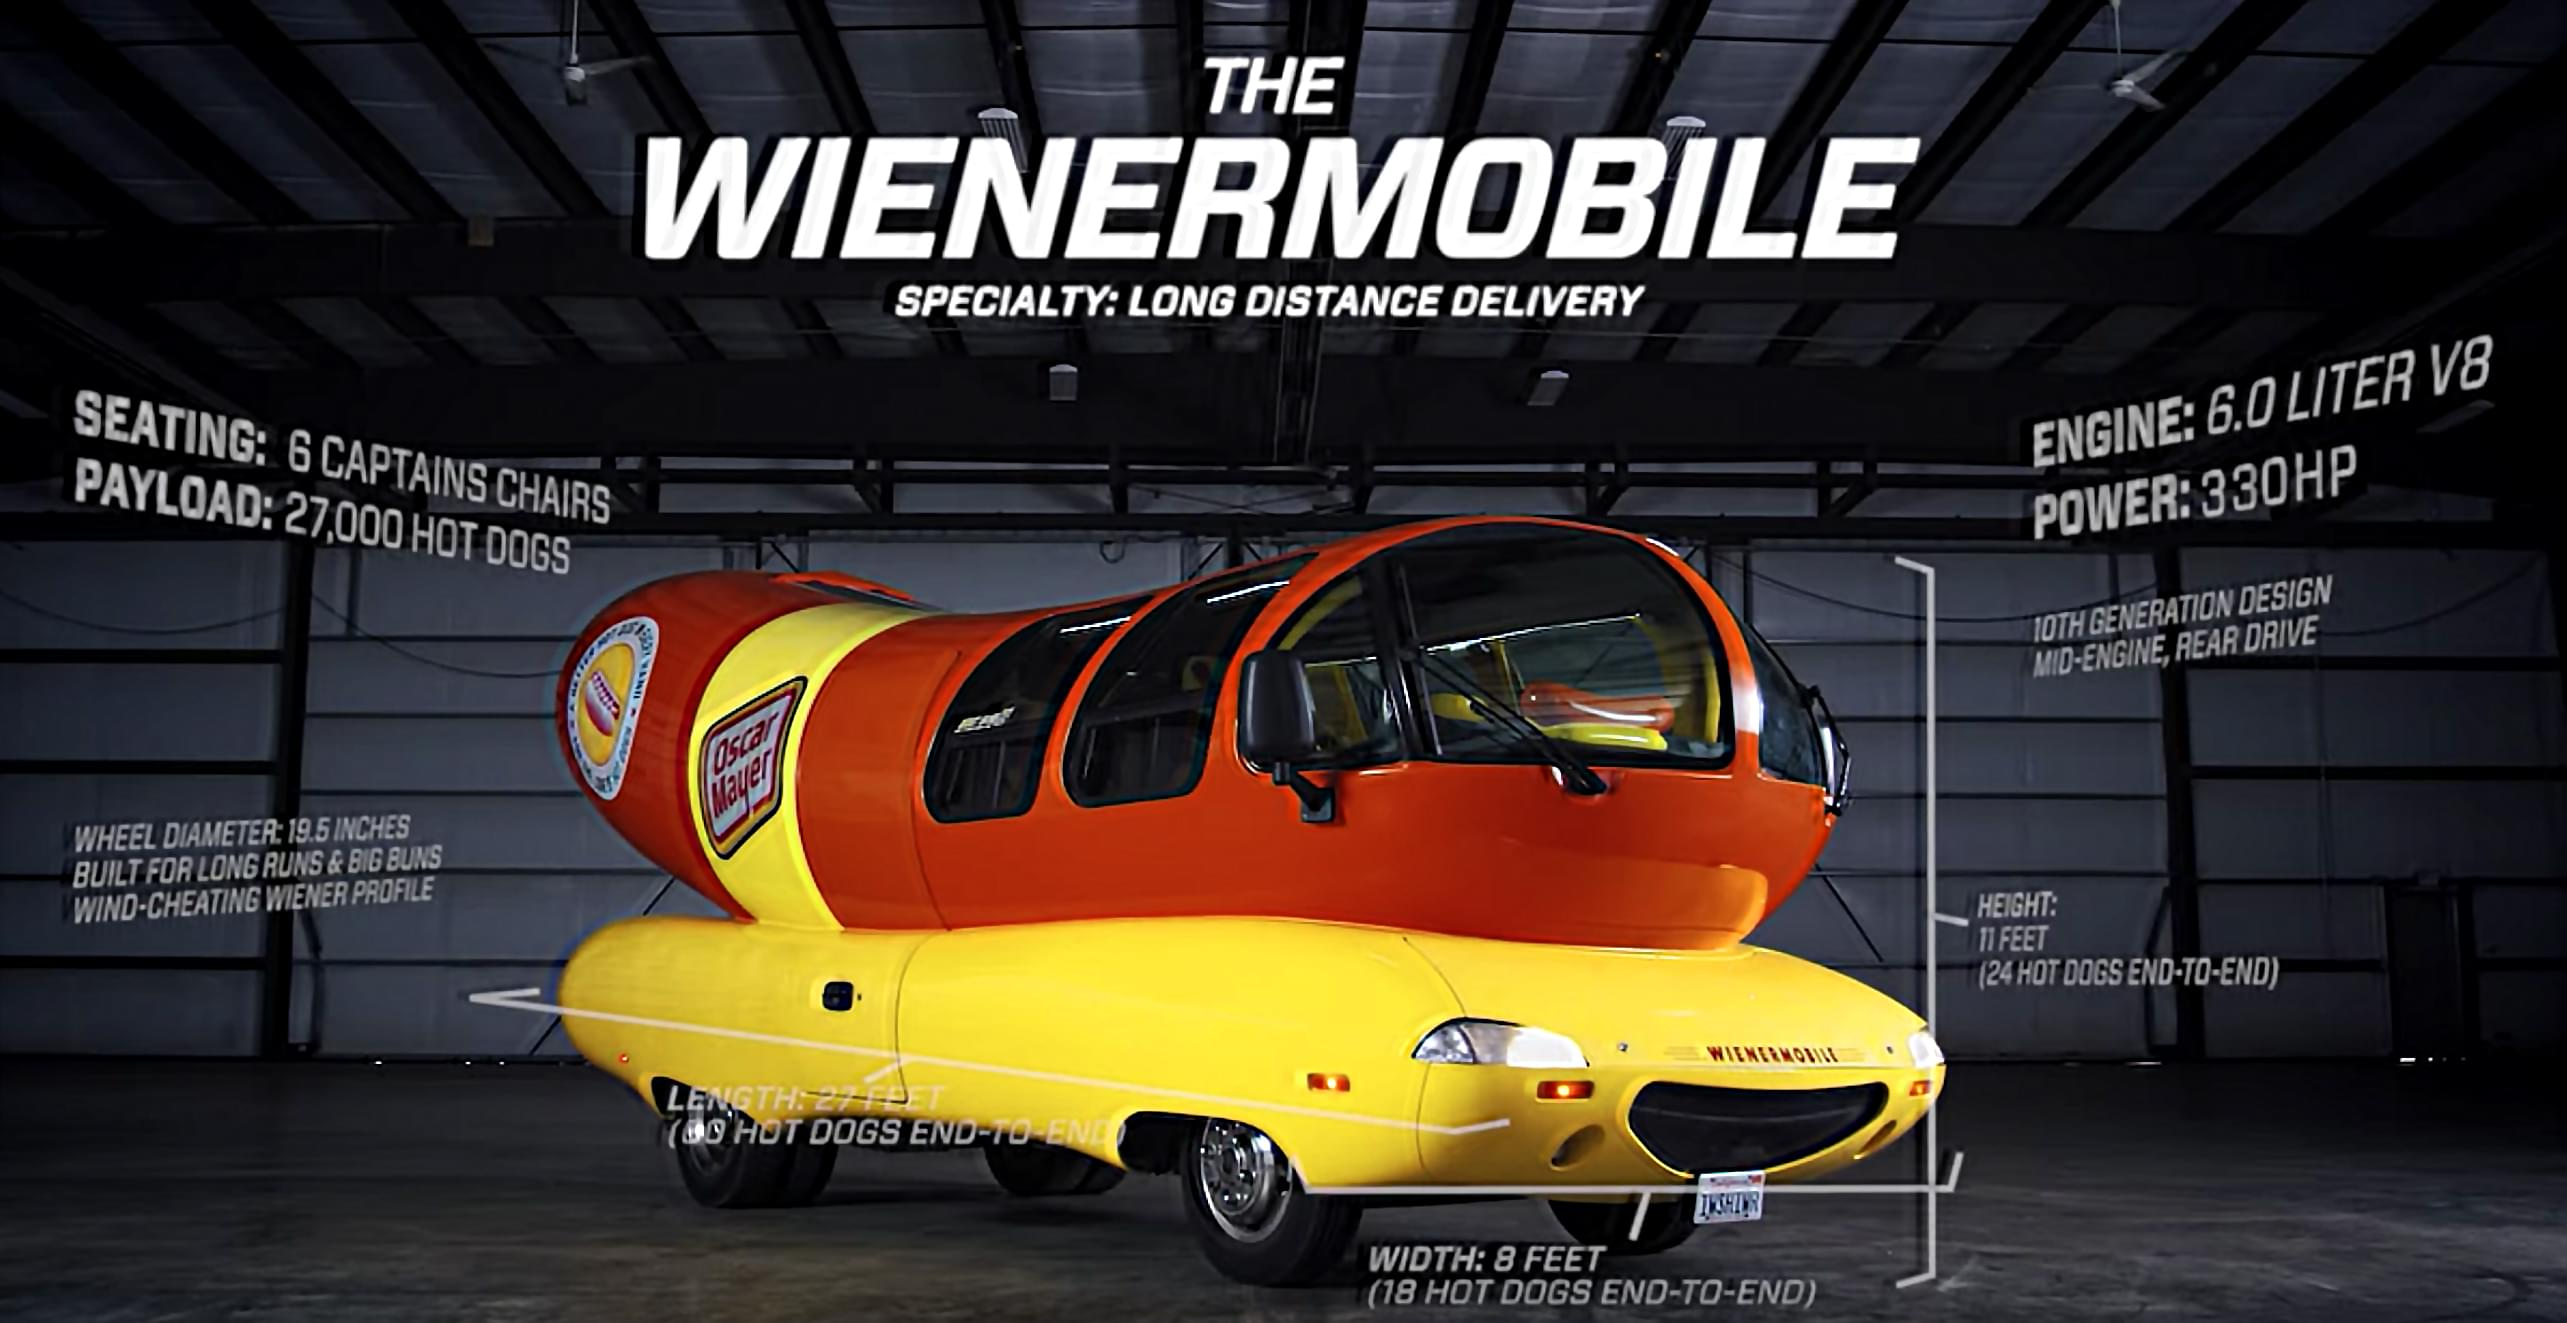 Oscar Meyer is seeking a new 'Wienermobile' Driver